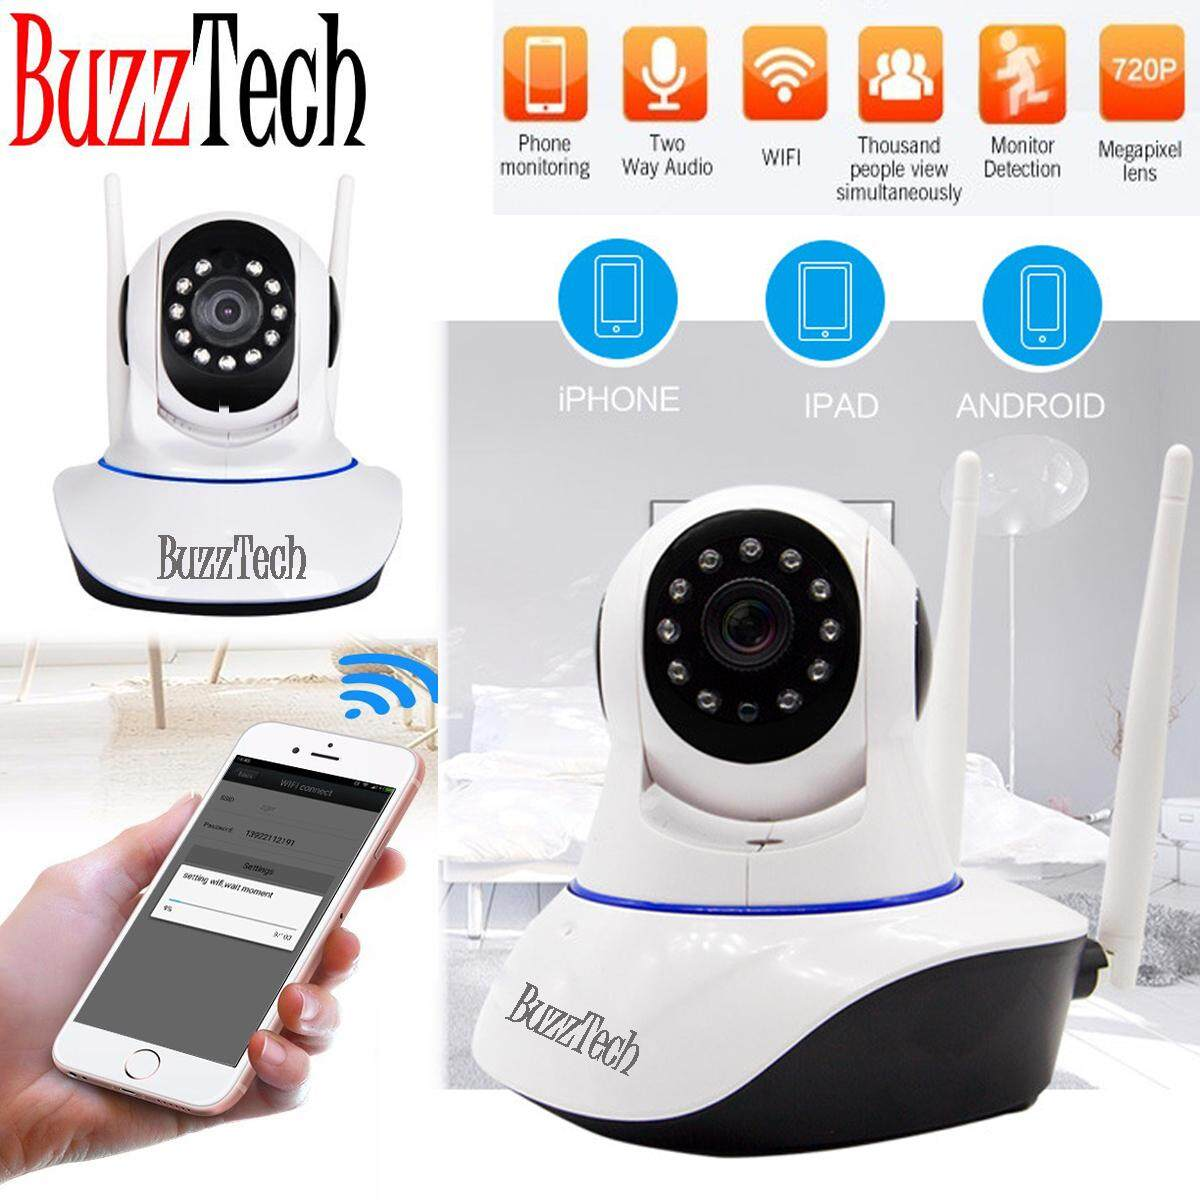 BuzzTech V380 LightBulb Double Antenna Design Smart Wifi Camera IP Security Camera Cam 720P HD Wifi CCTV Night Vision Baby Monitor Wireless IP infrared monitoring